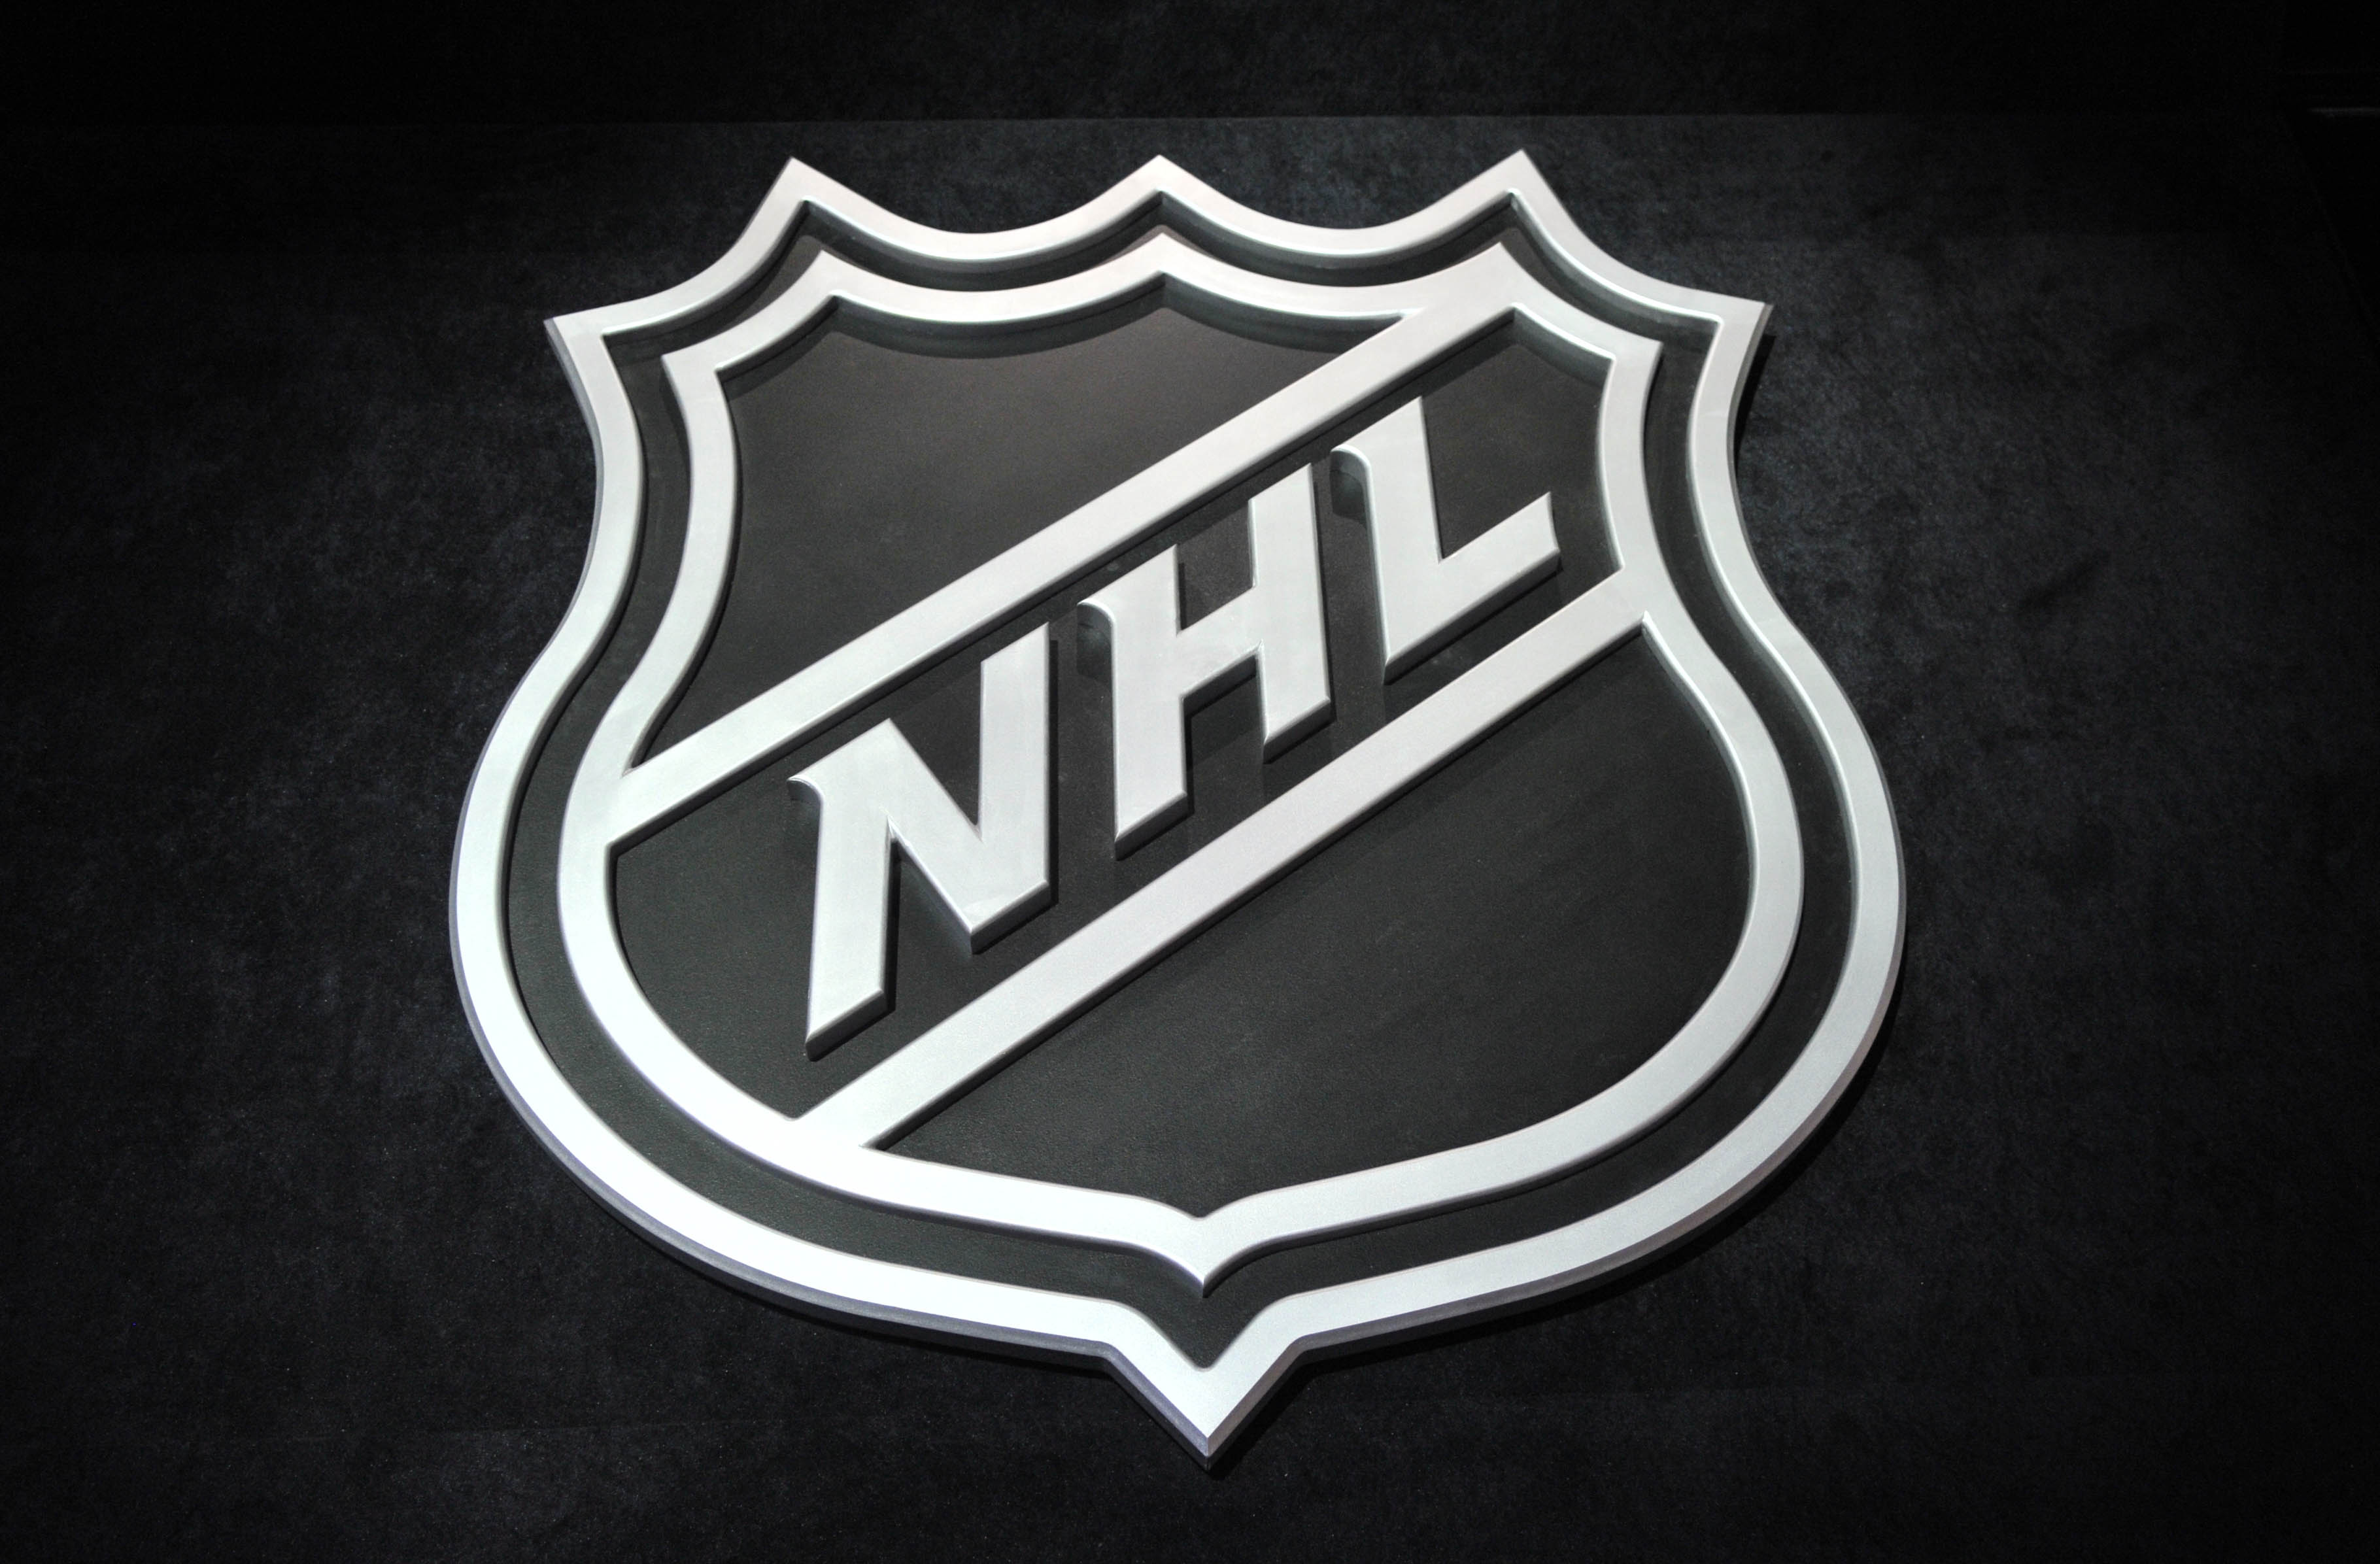 8668639-nhl-nhl-draft-1